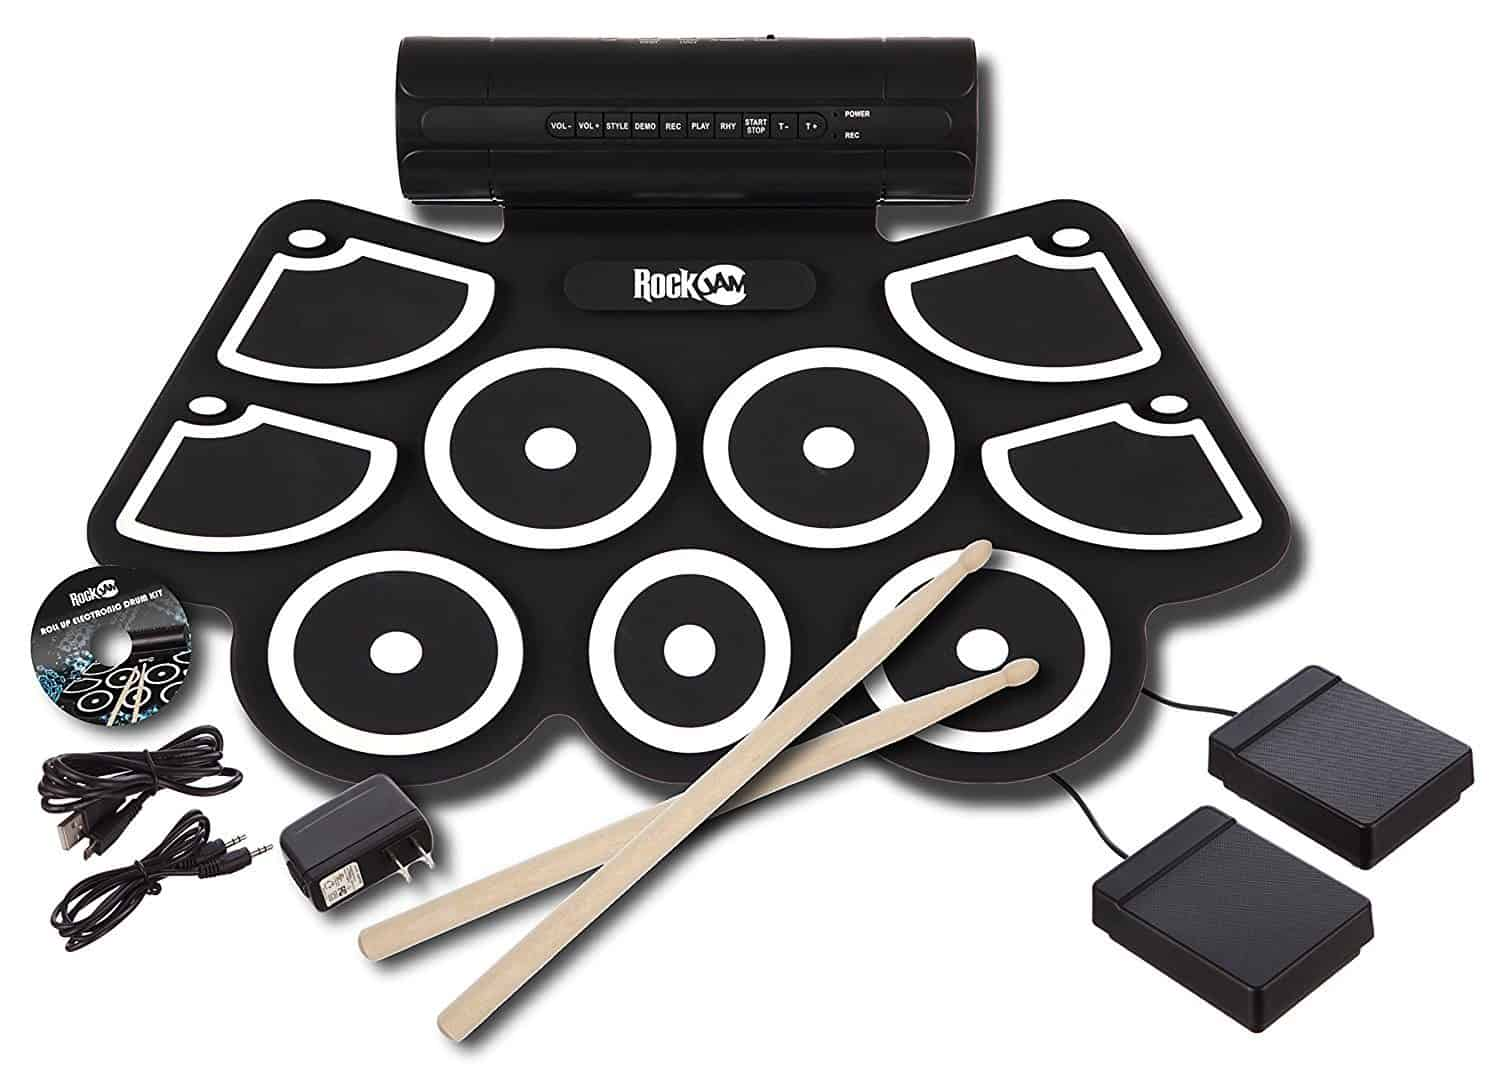 RockJam Electronic Roll Up MIDI Drum Kit with Built in Speakers